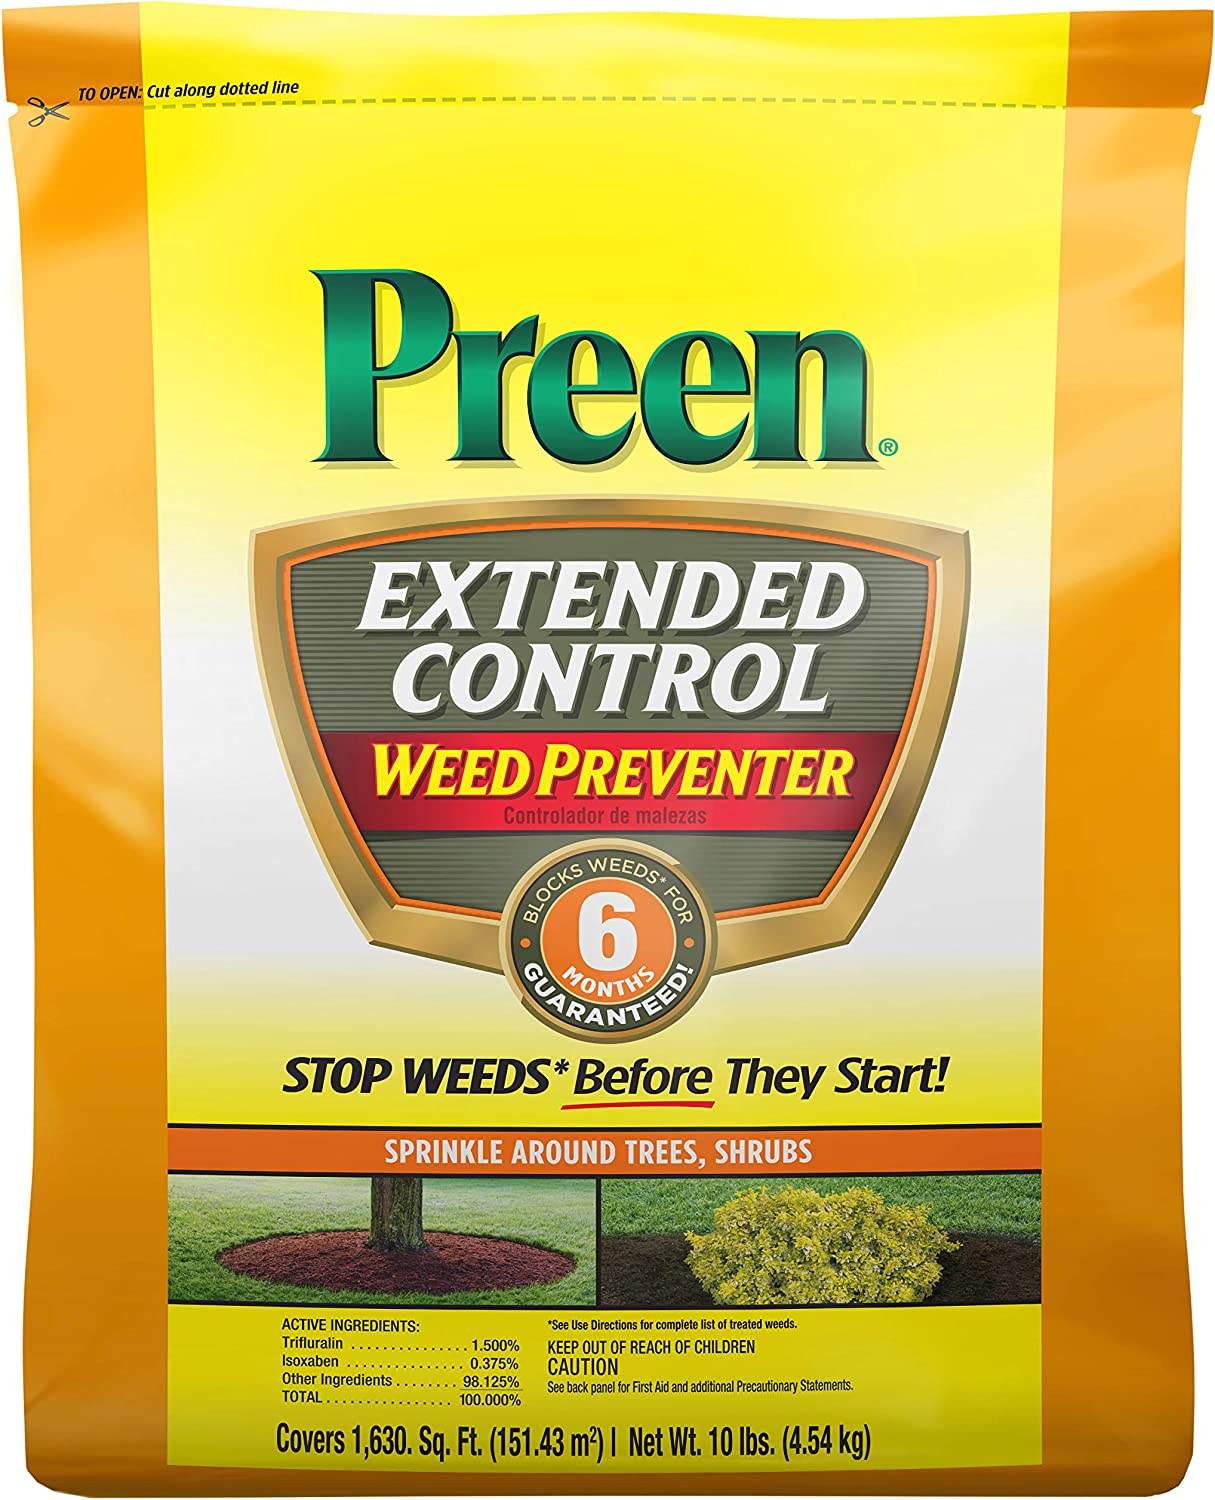 Extended Control Weed Preventer